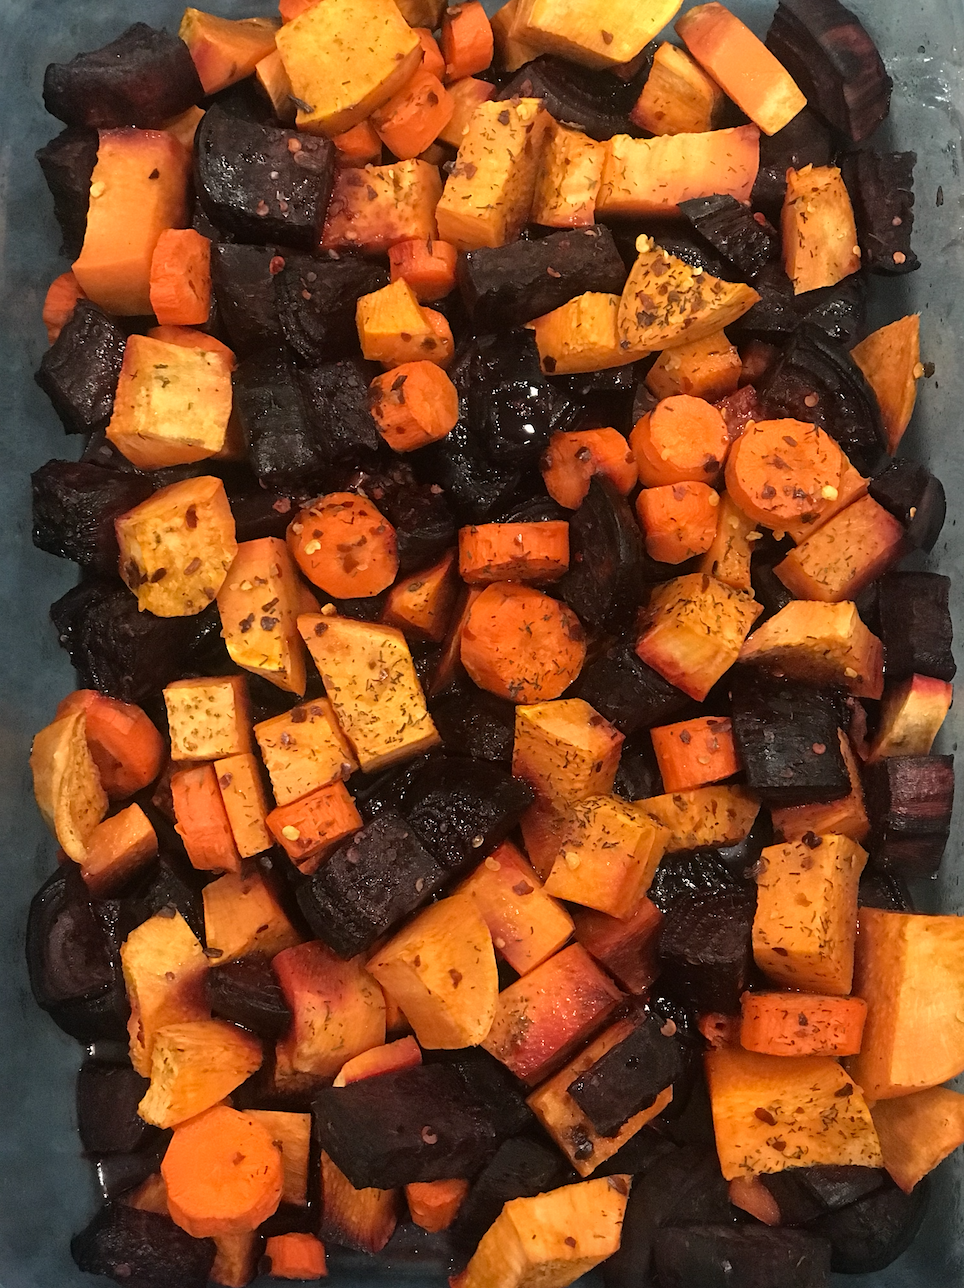 Roasted Beets, Sweet Potatoes, and Carrots